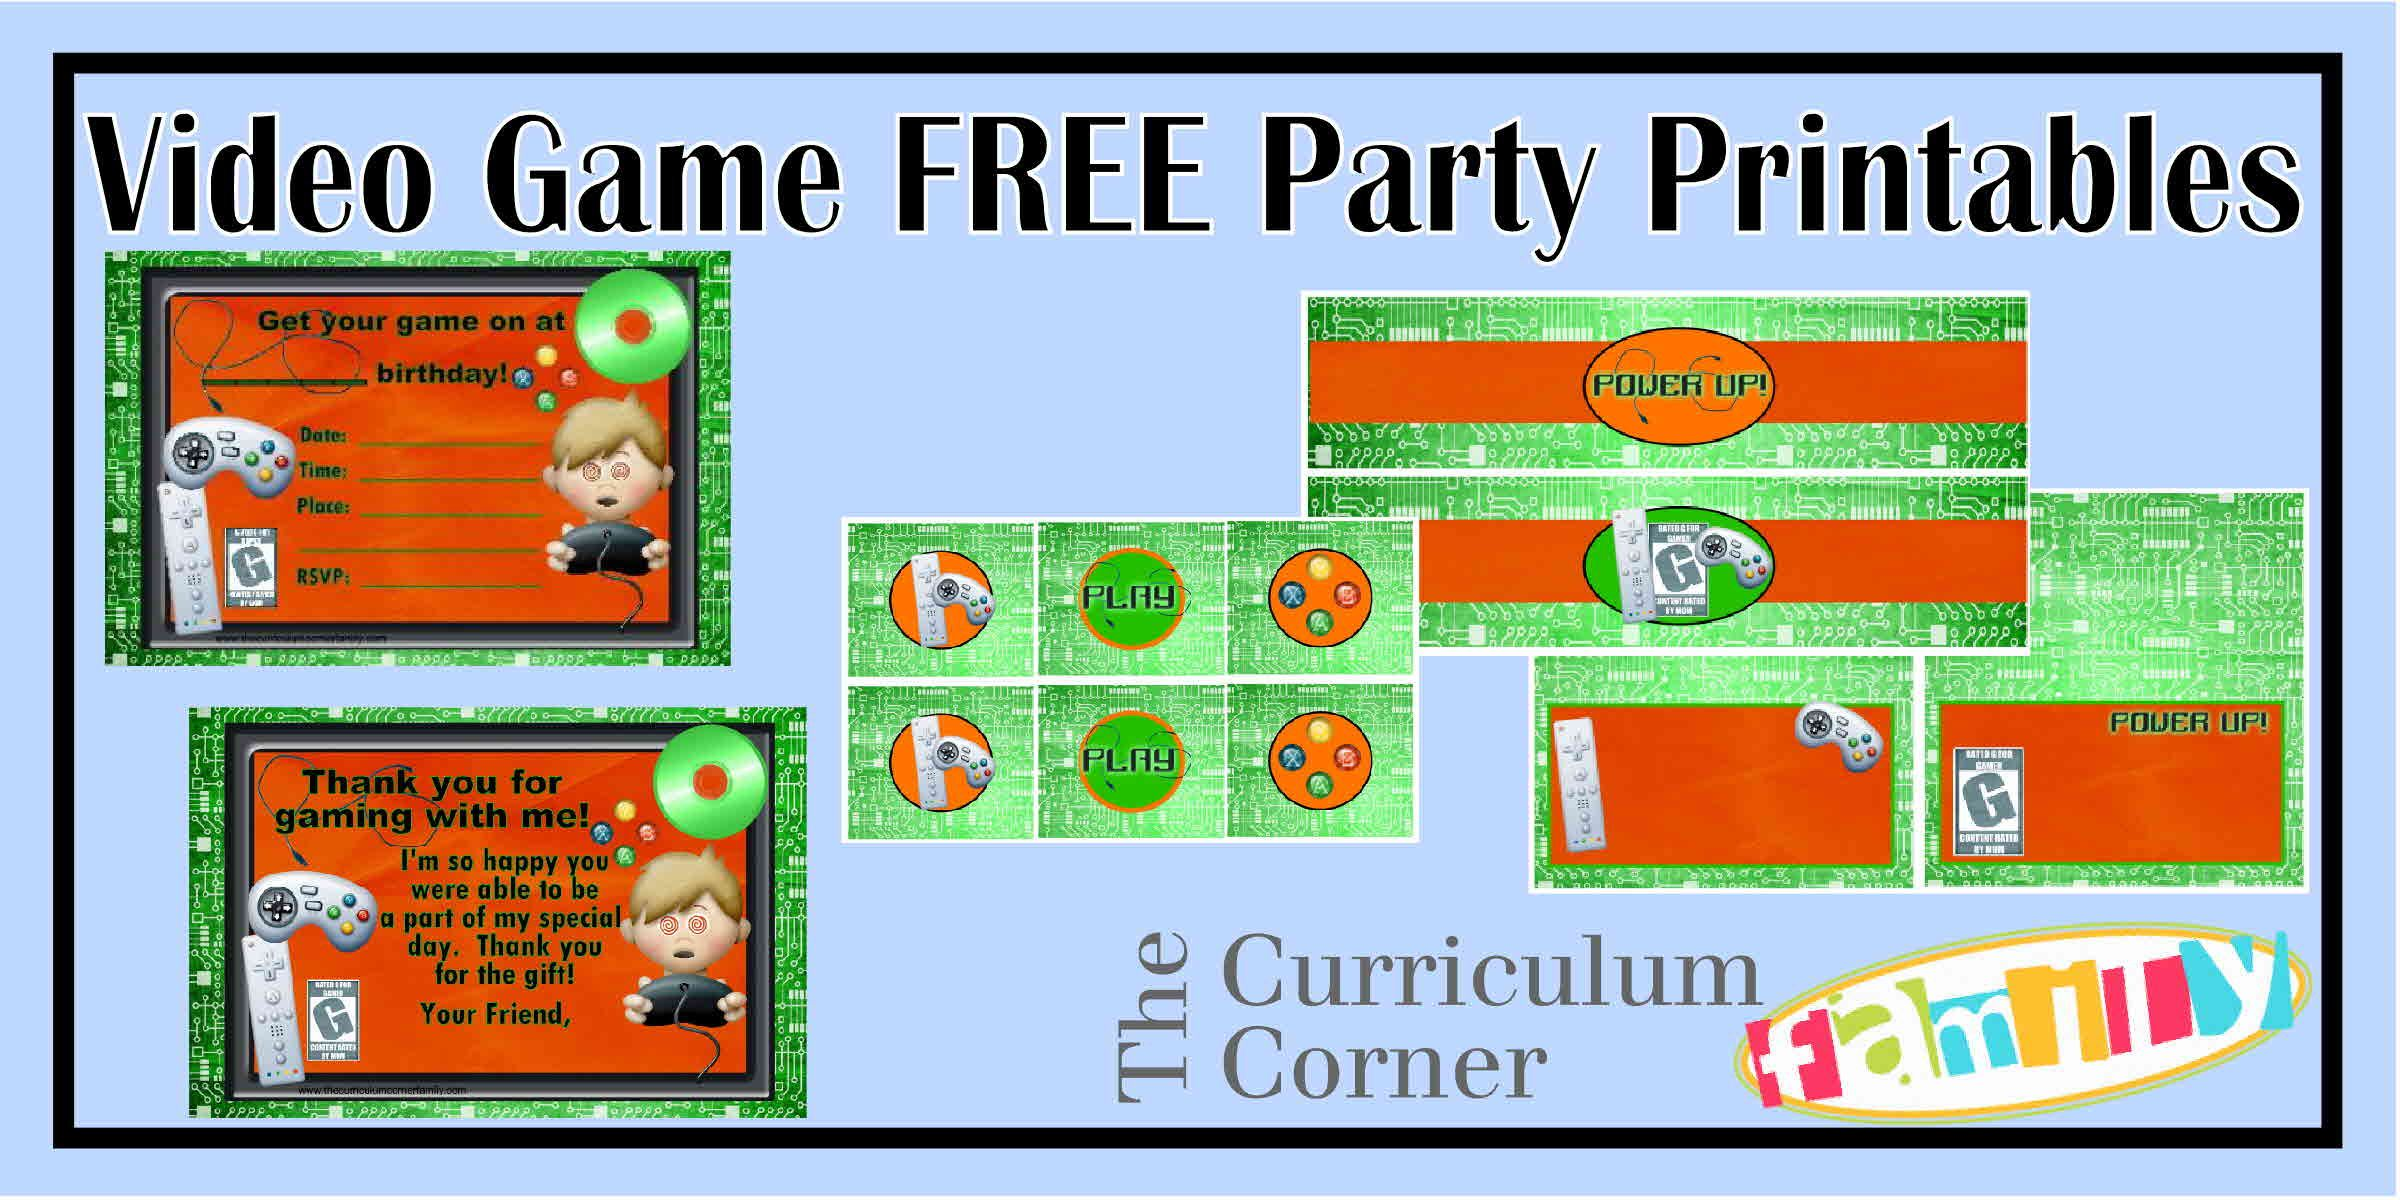 Freebie Video Game Party Printables Video Game Party Invitation Video Games Birthday Party Party Invitations Kids